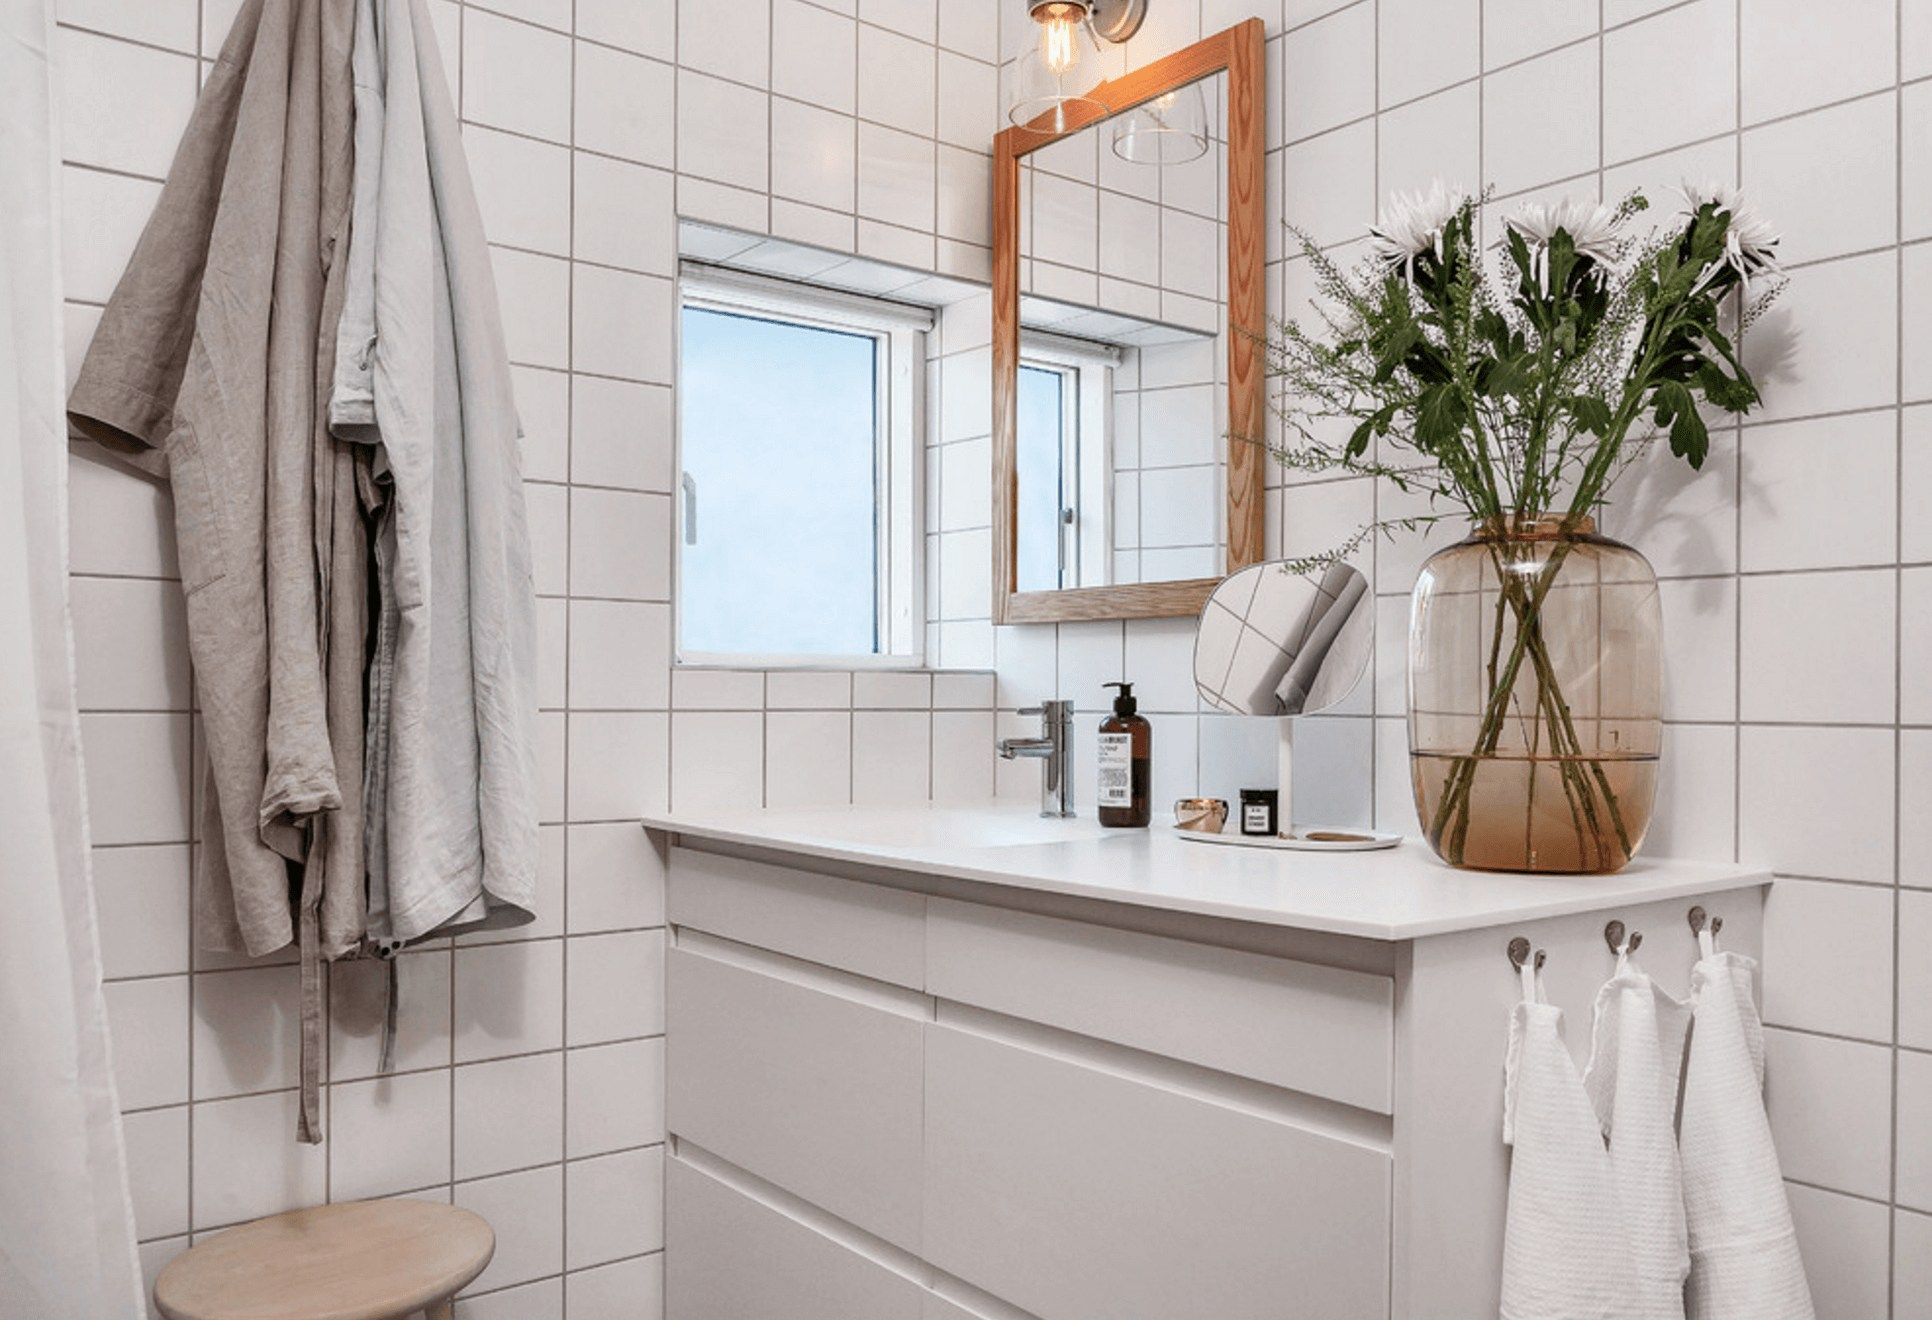 Nordic Interior Design Bathroom Interior Design For Small Square Living Space Scandinavian Interior Scandinavian Interior Design Modern Scandinavian Interior